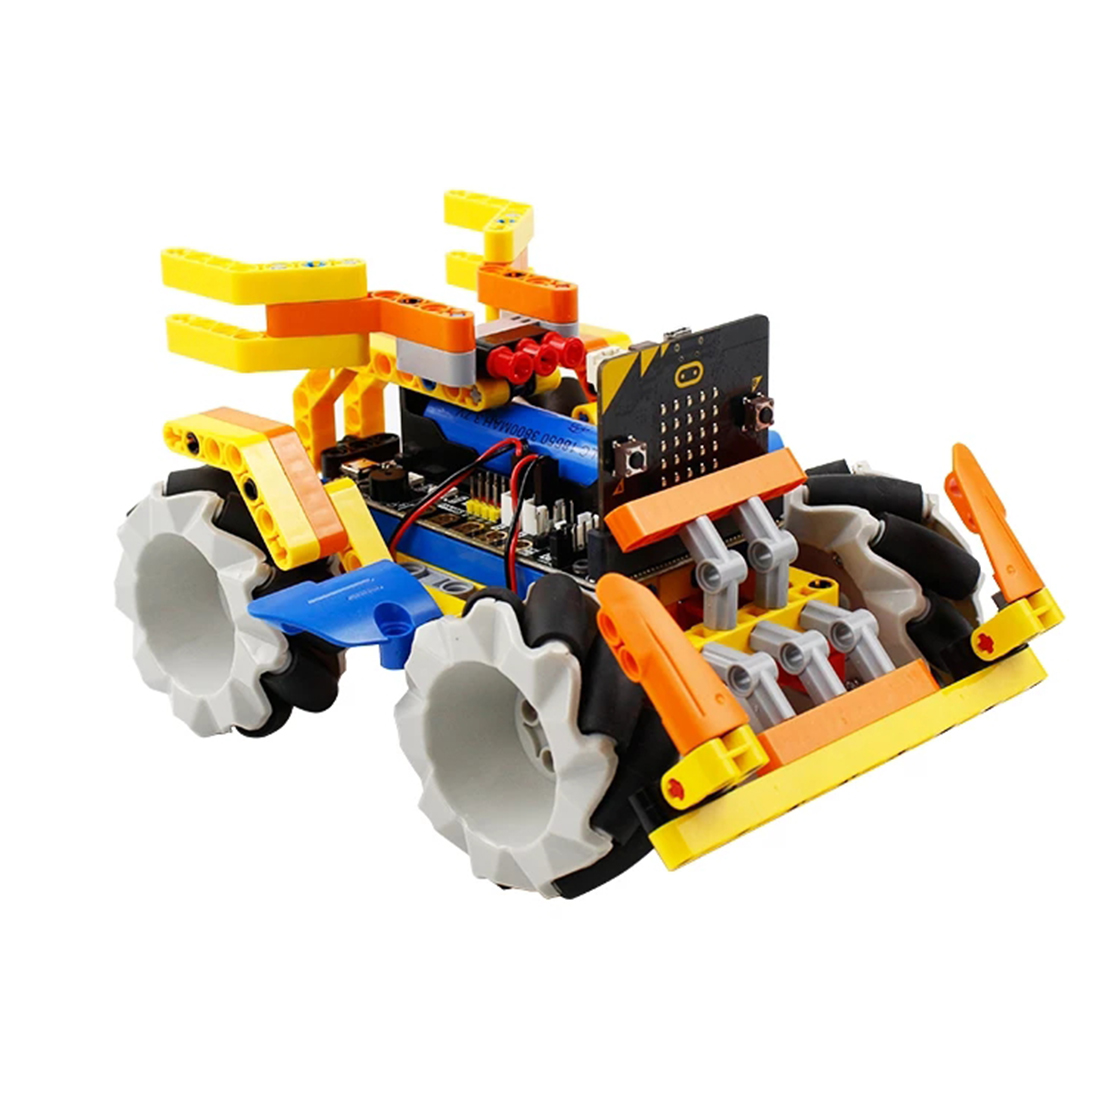 Program Intelligent Robot Building Block Kit Mecanum Wheel Robot Car With Micro:Bit Board For Micro: Bit (No Micro:Bit Board)